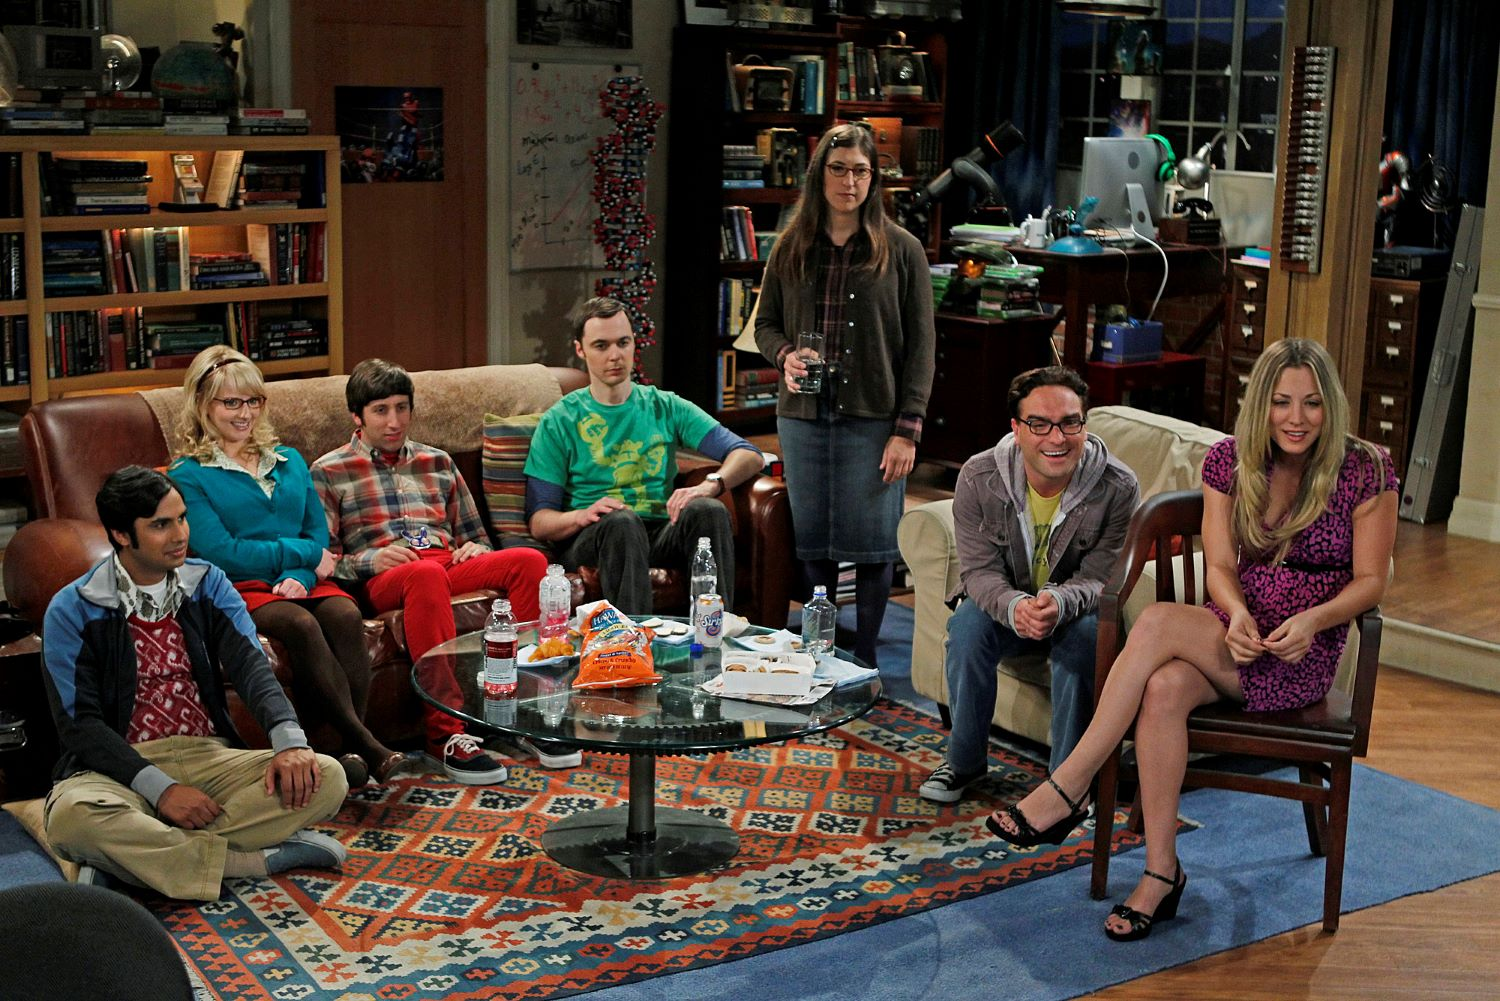 The Cast of 'The Big Bang Theory'